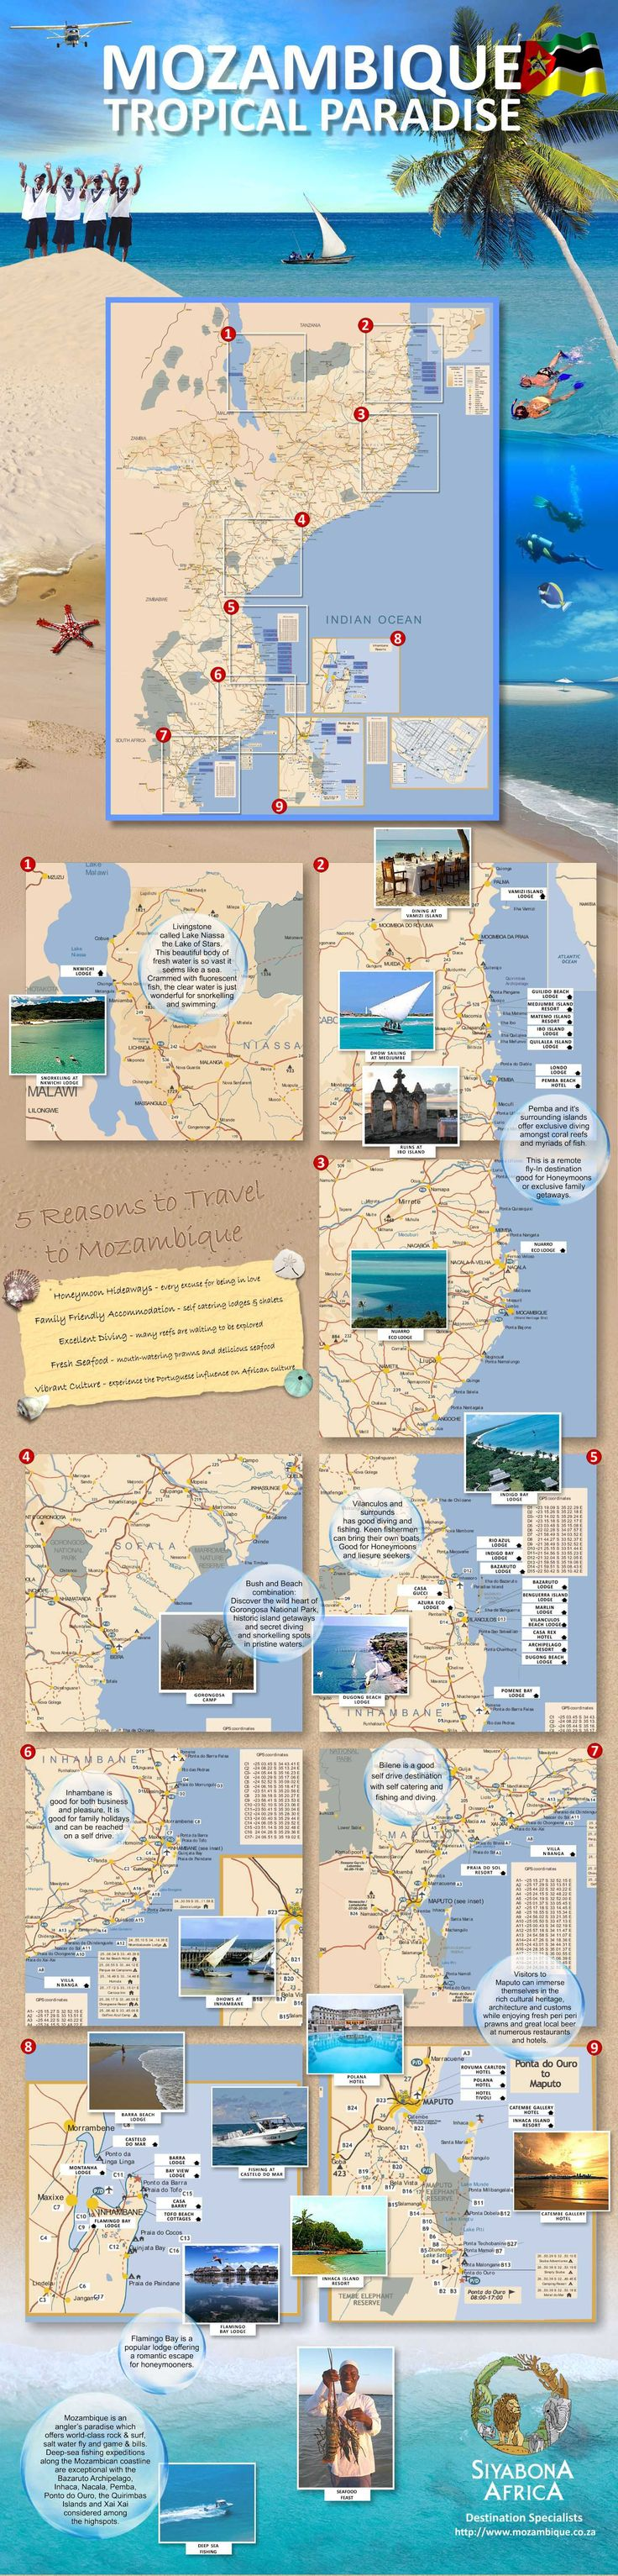 http://www.mozambique.co.za/images/mozambique-infographic.jpg